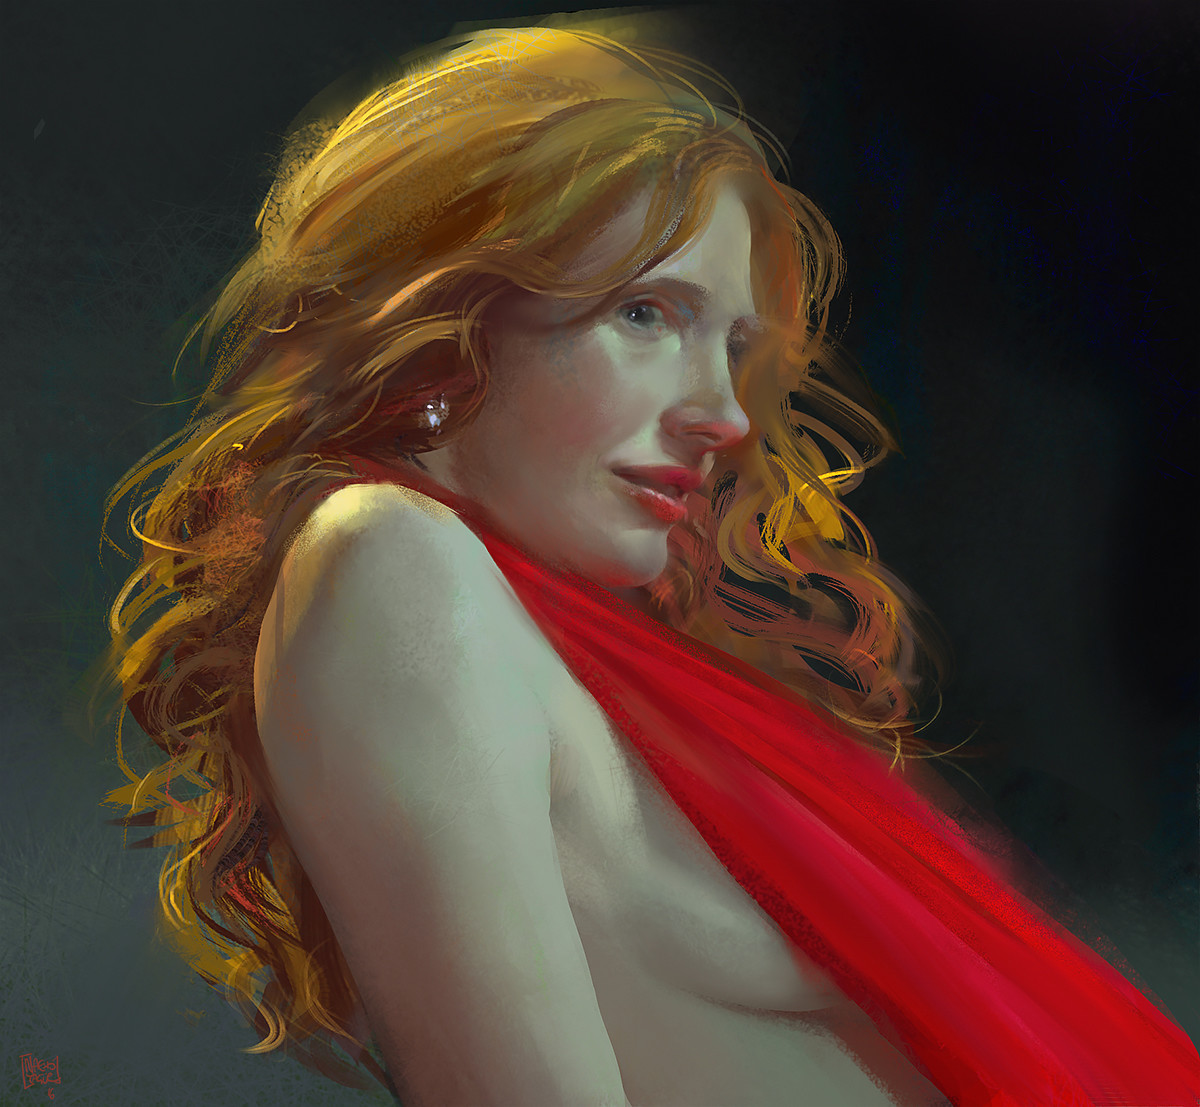 Nacho Yague Digital Painting Concept art personnal work woman red hair red dress